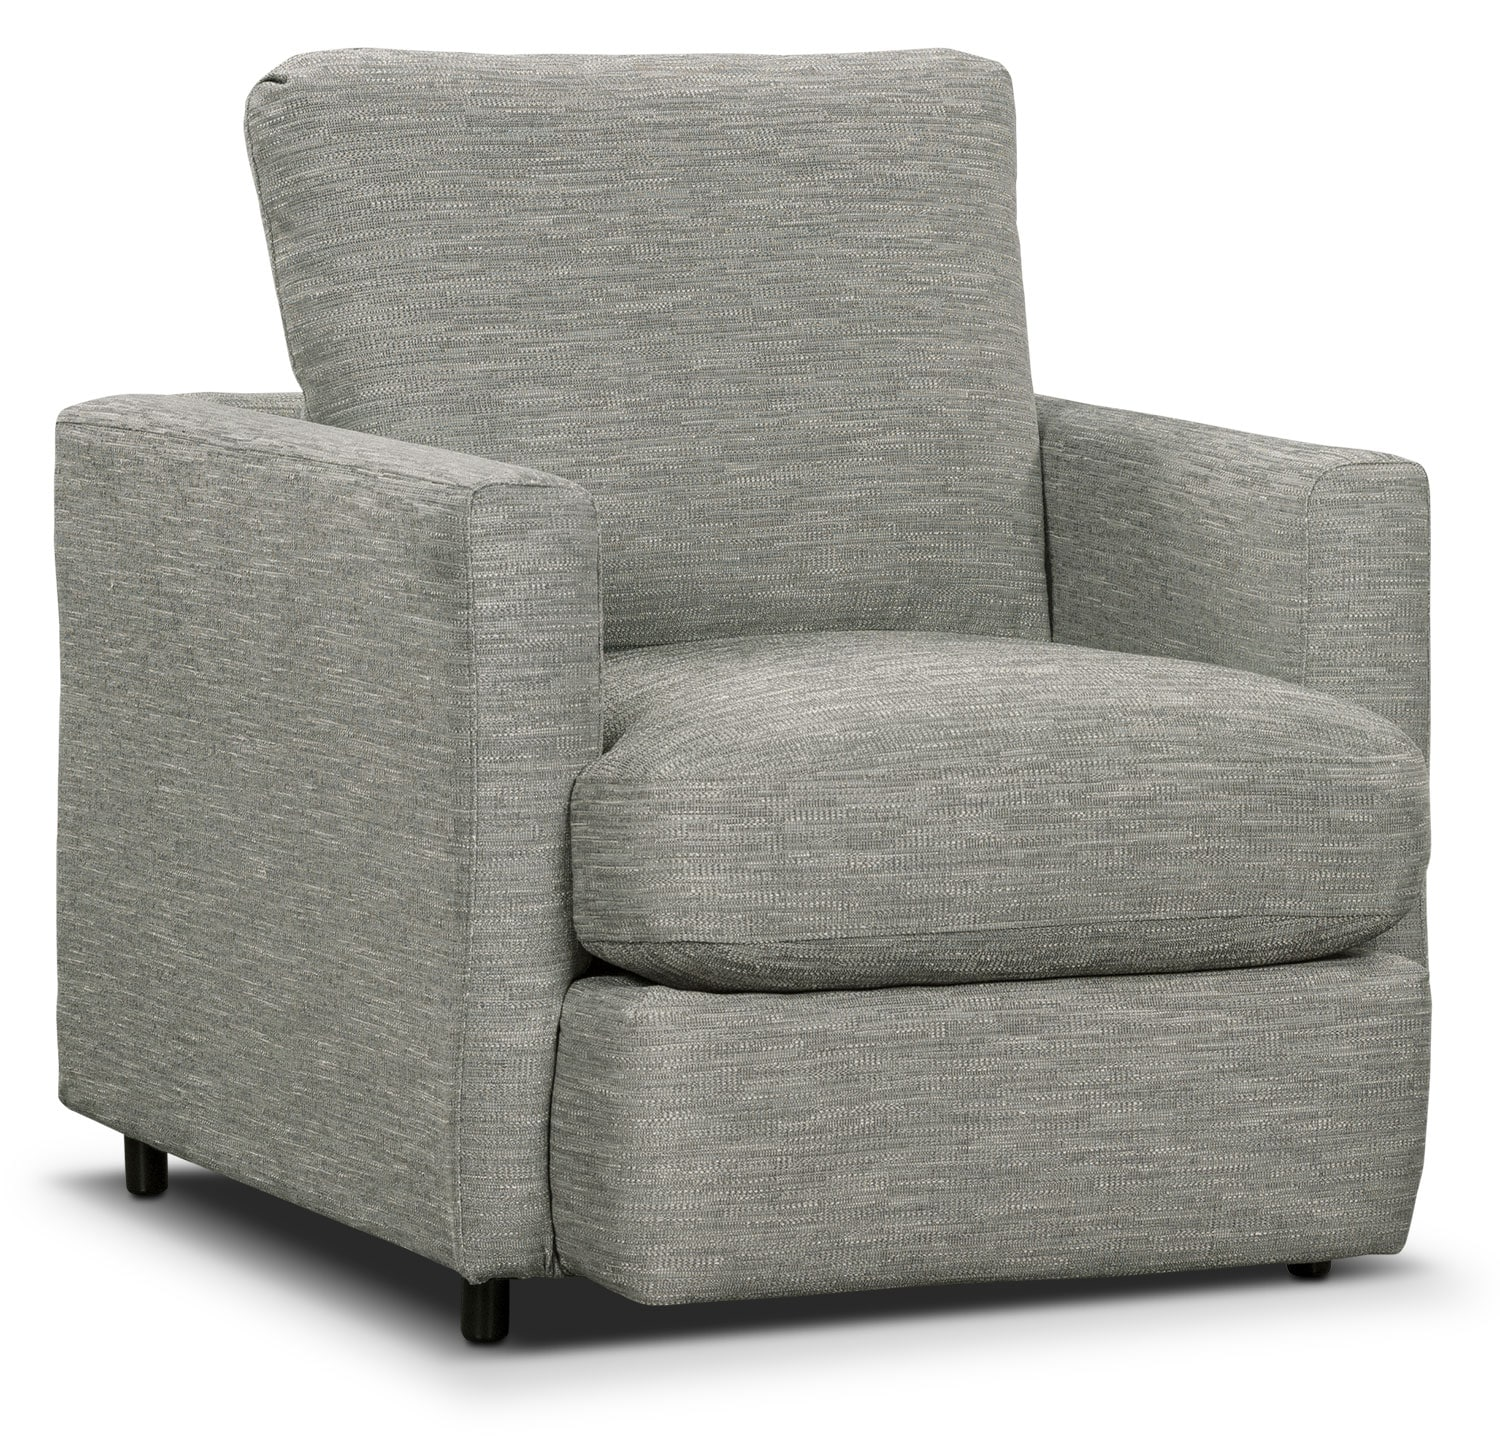 Living Room Furniture - Urbana Chenille Studio-Size Chair - Light Grey